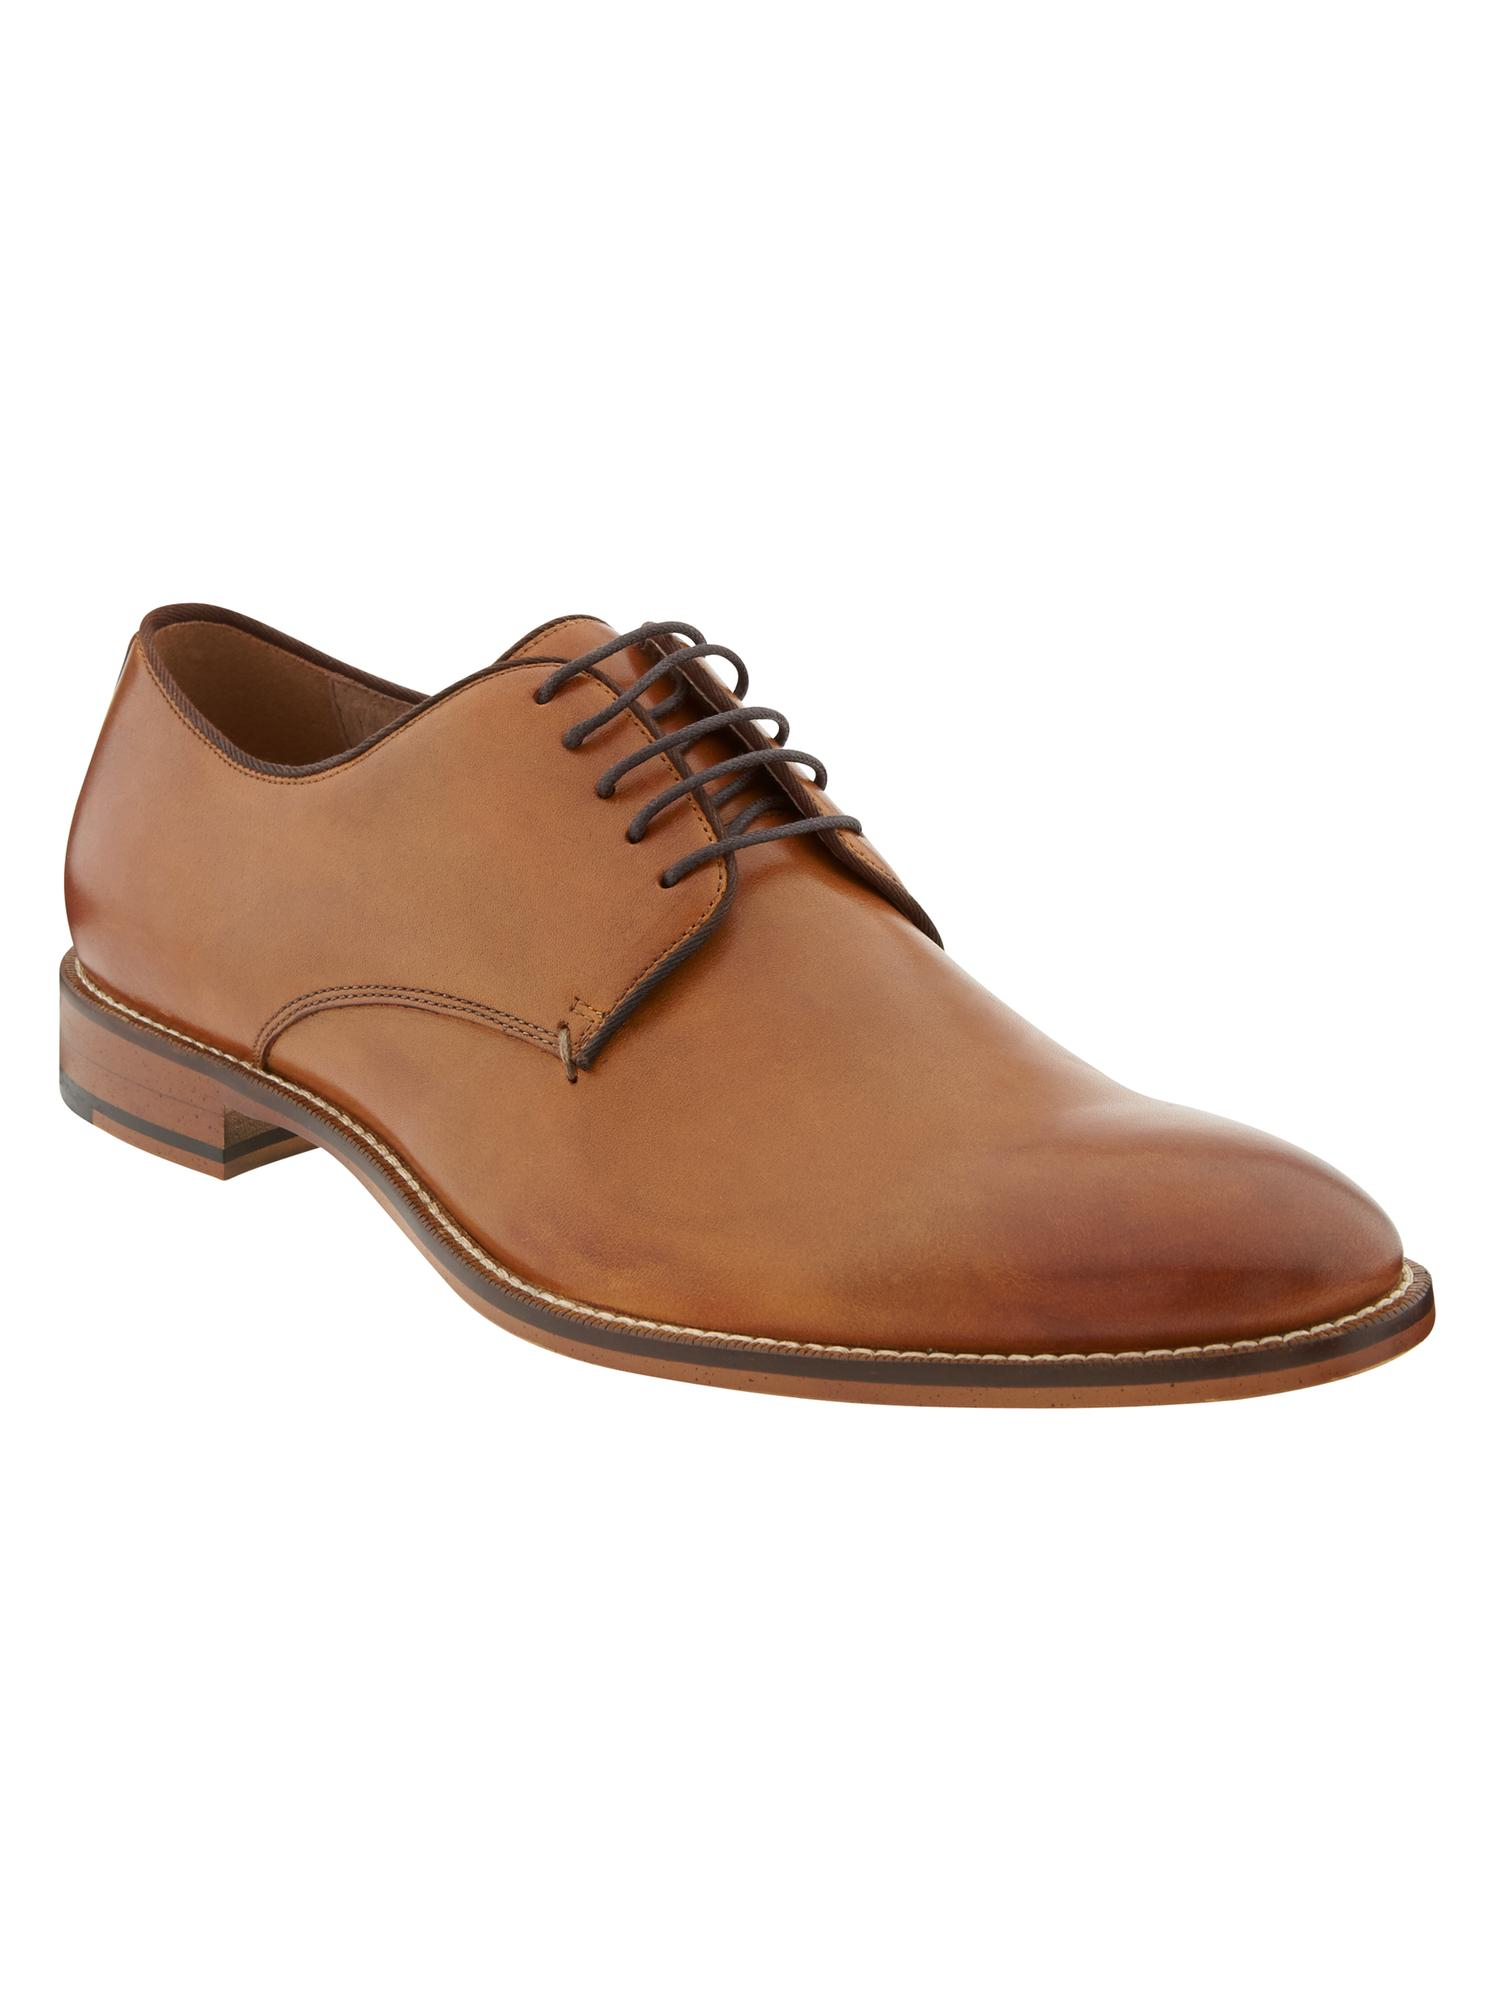 Find Banana Republic men's dress shoes at ShopStyle. Shop the latest collection of Banana Republic men's dress shoes from the most popular stores -.